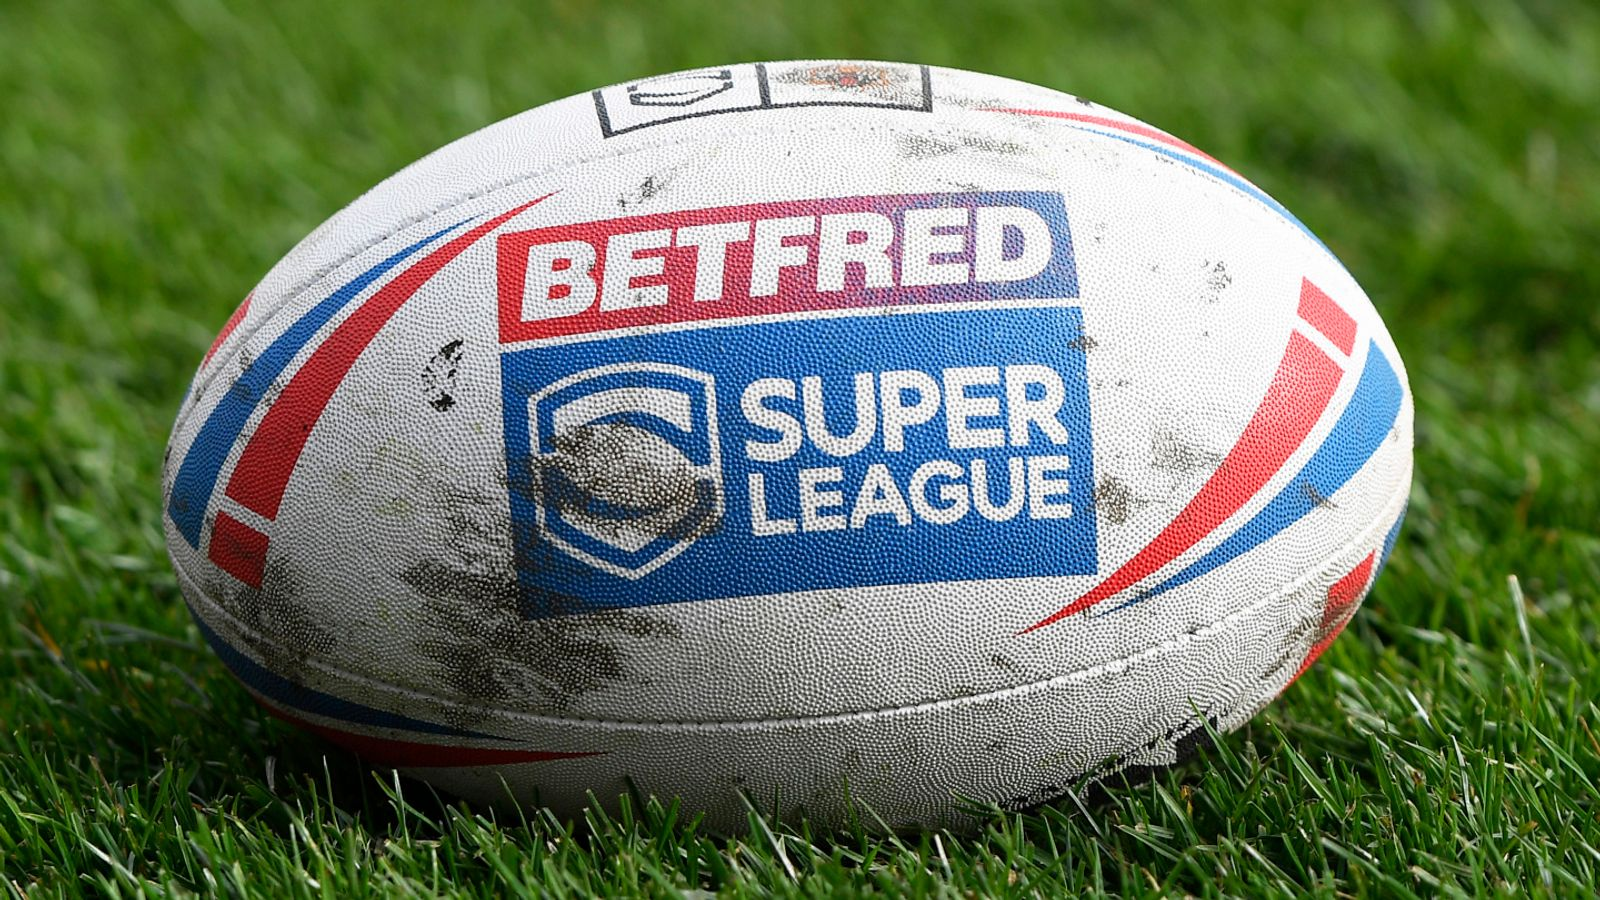 Super League: Four test positive for coronavirus in latest round of testing